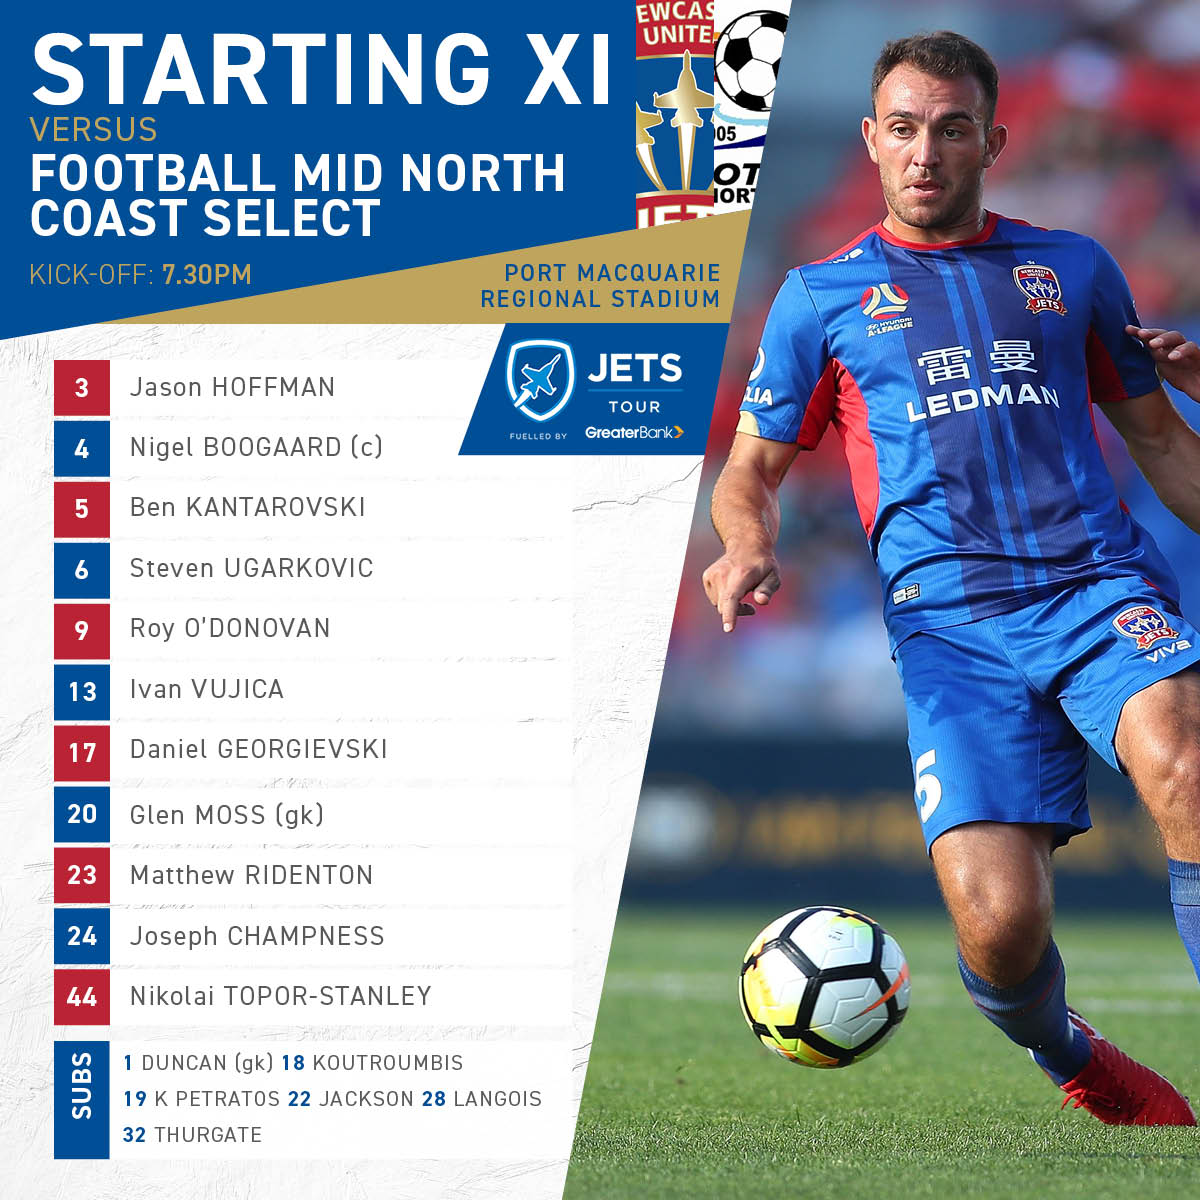 Here's how we'll take the field tonight for our clash with Mid North Coast Select, be sure to keep up with all the action right here! #JetsTour